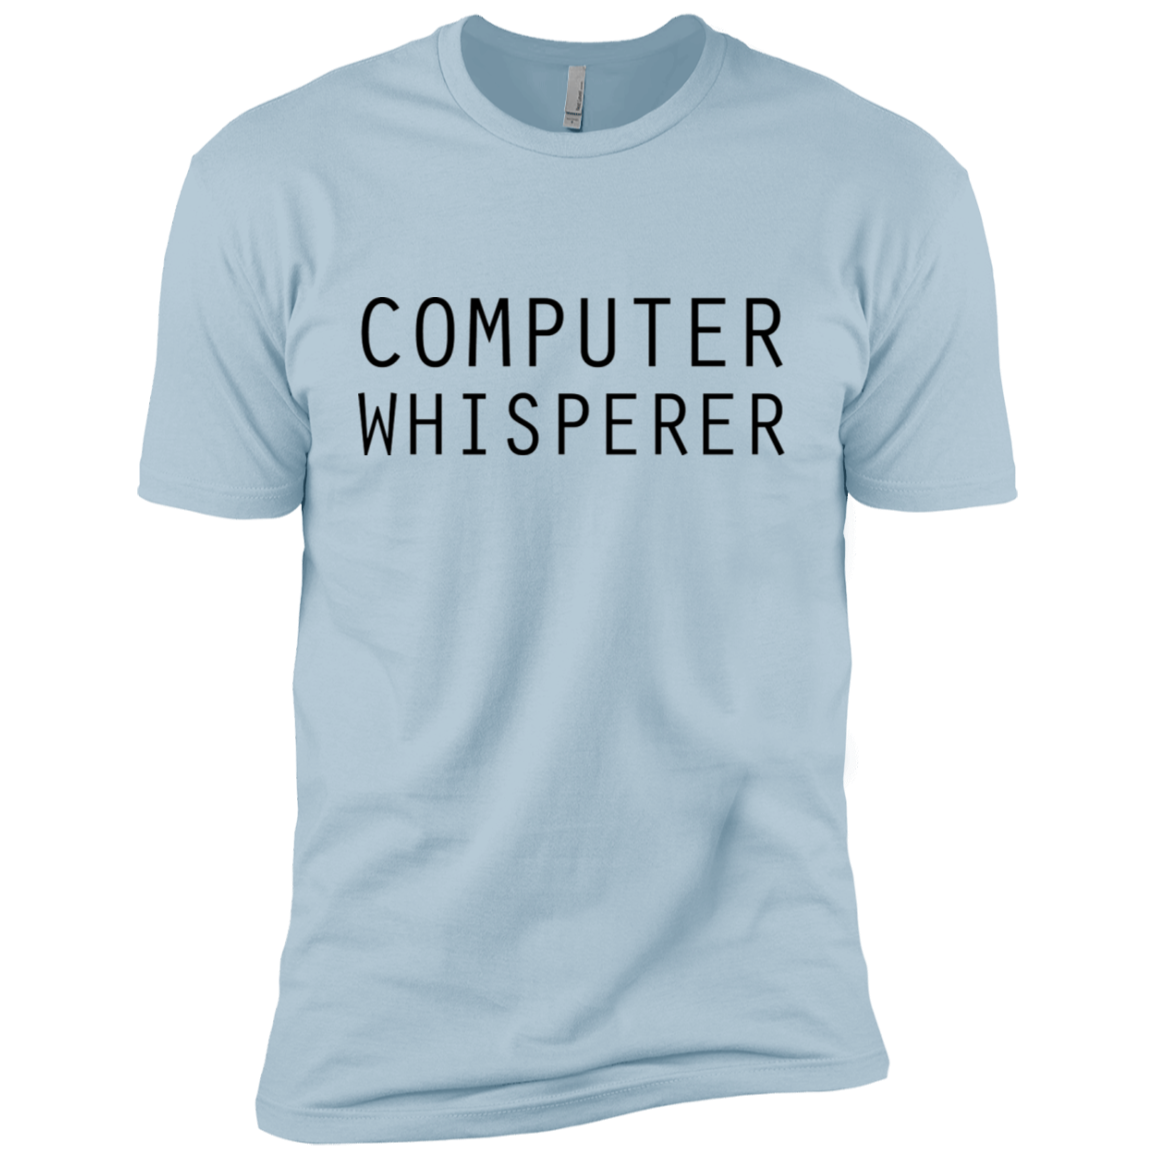 Computer Whisperer Men's Classic Tee - Trendy Tees